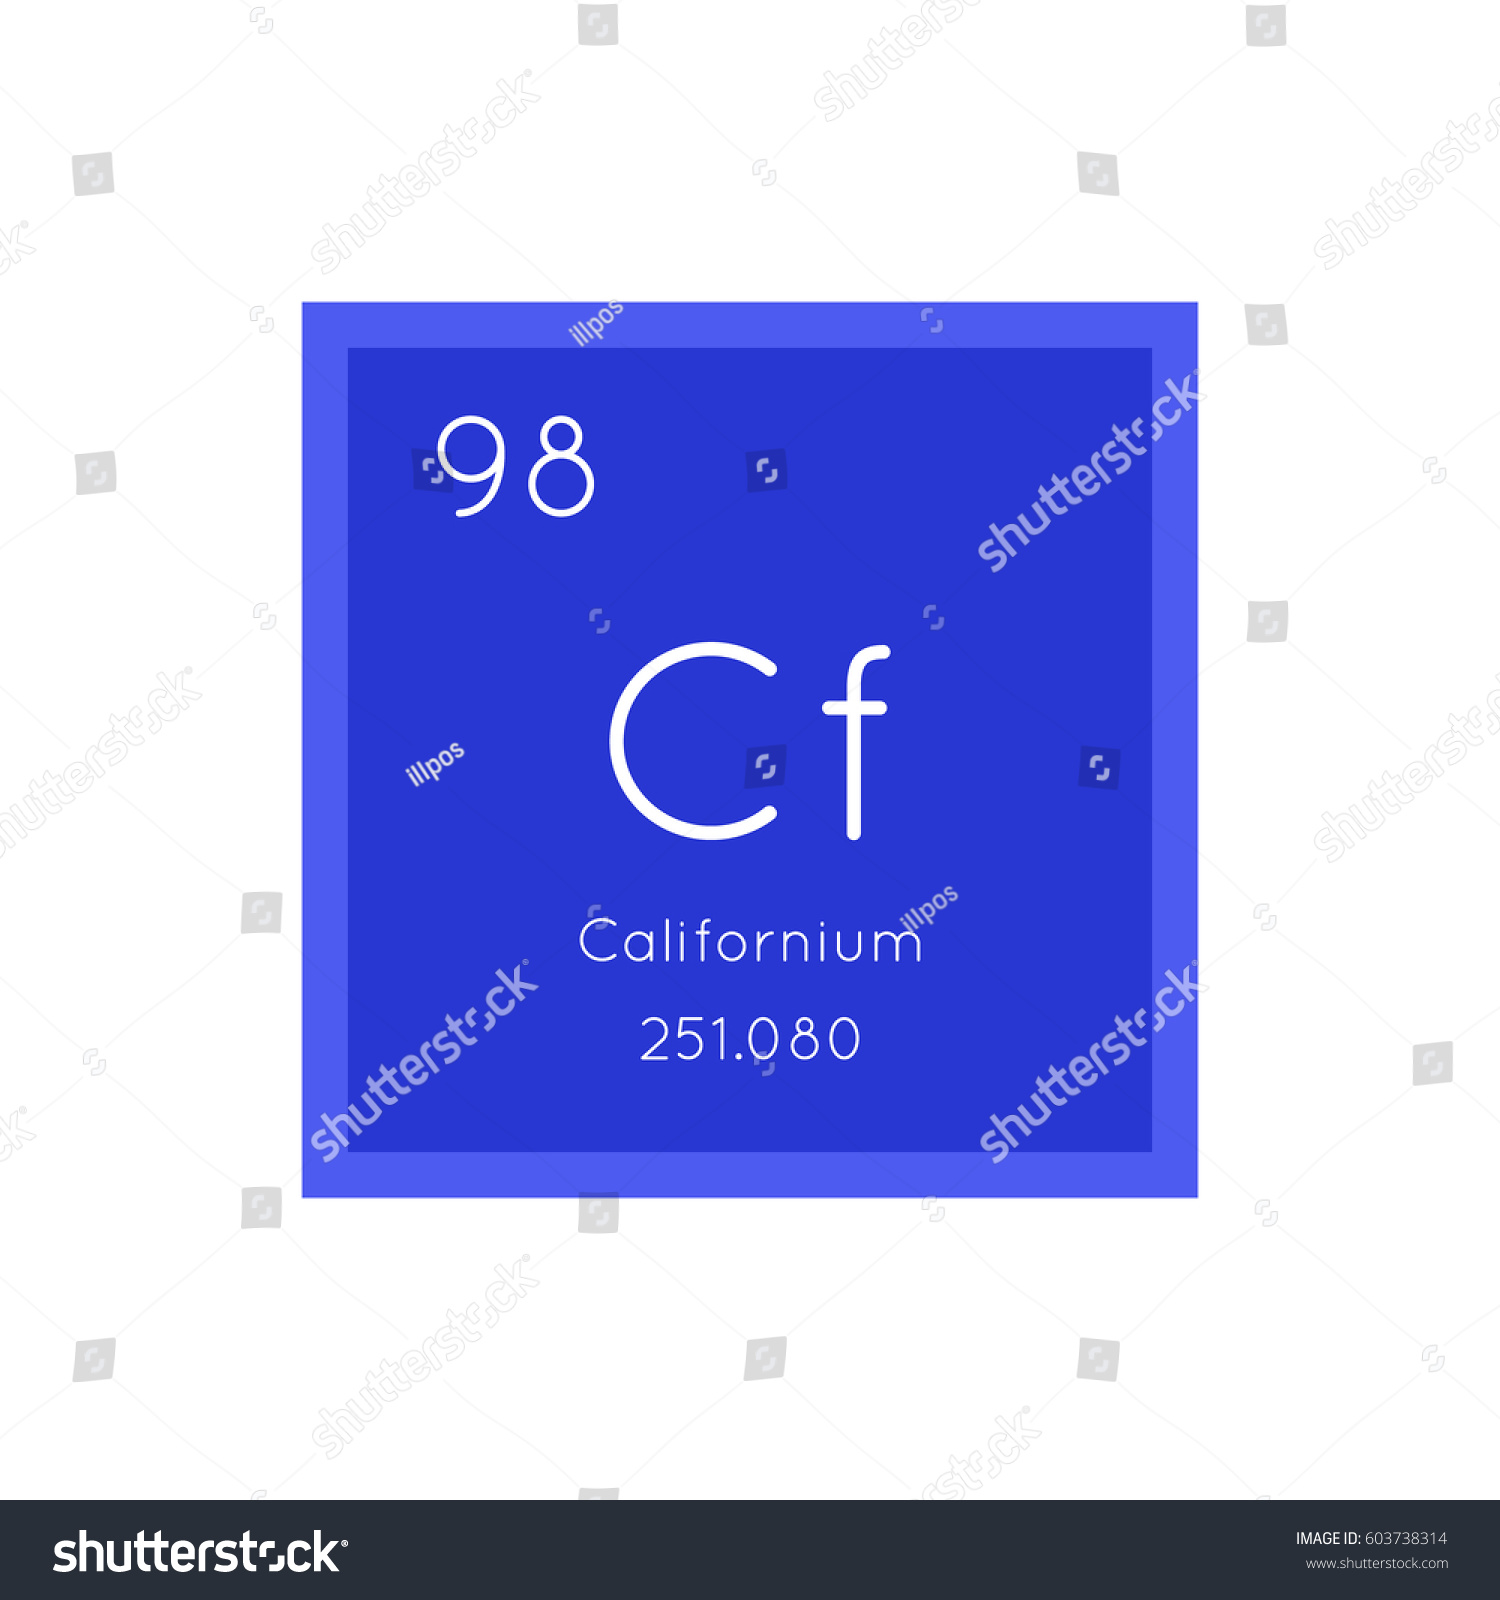 Californium simple style tile icon chemical stock vector 603738314 californium simple style tile icon chemical element of periodic table vector illustration eps8 gamestrikefo Images